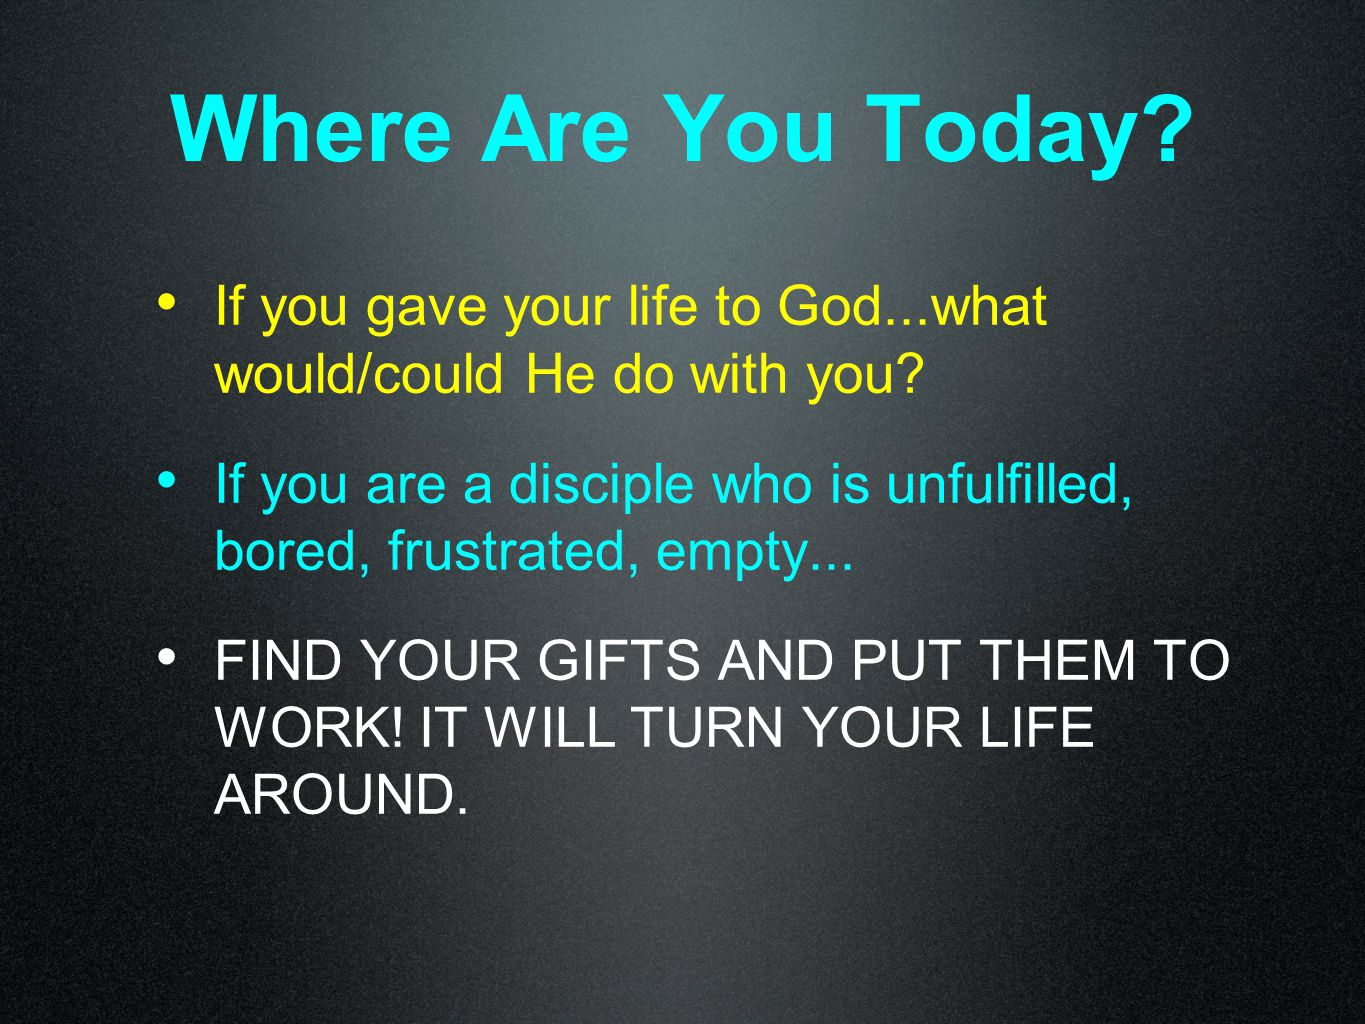 Where Are You Today. If you gave your life to God...what would/could He do with you.